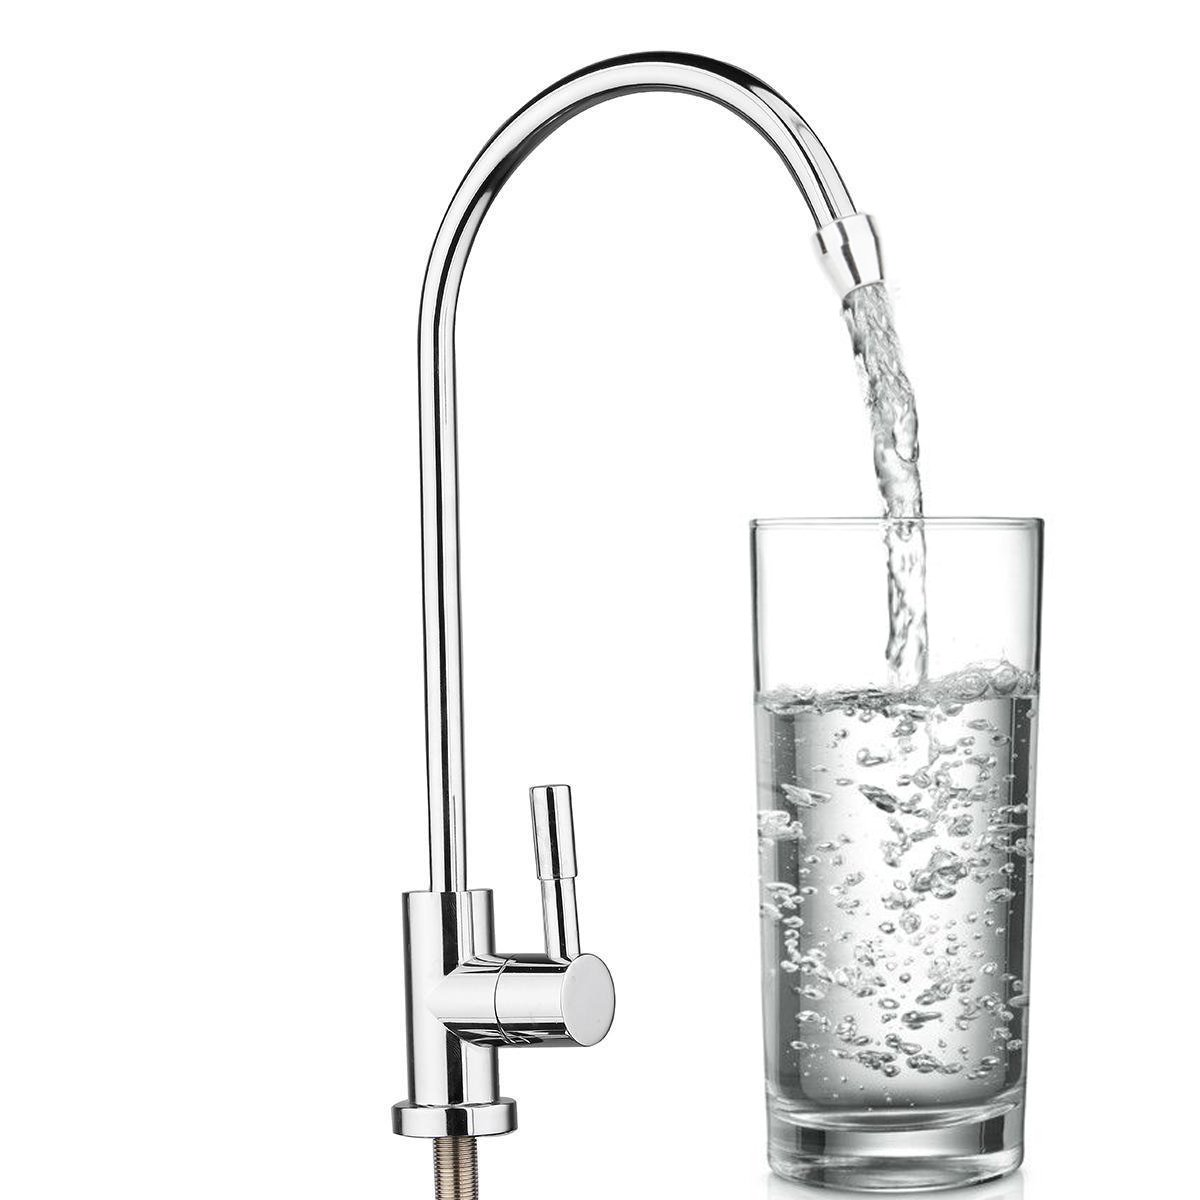 KINWAT 1pc 304 Stainless Steel Water Filter Faucet 1/4'' 360 Degree Chrome Osmosis Drinking RO Finish Reverse Sink Faucets by KINWAT (Image #1)